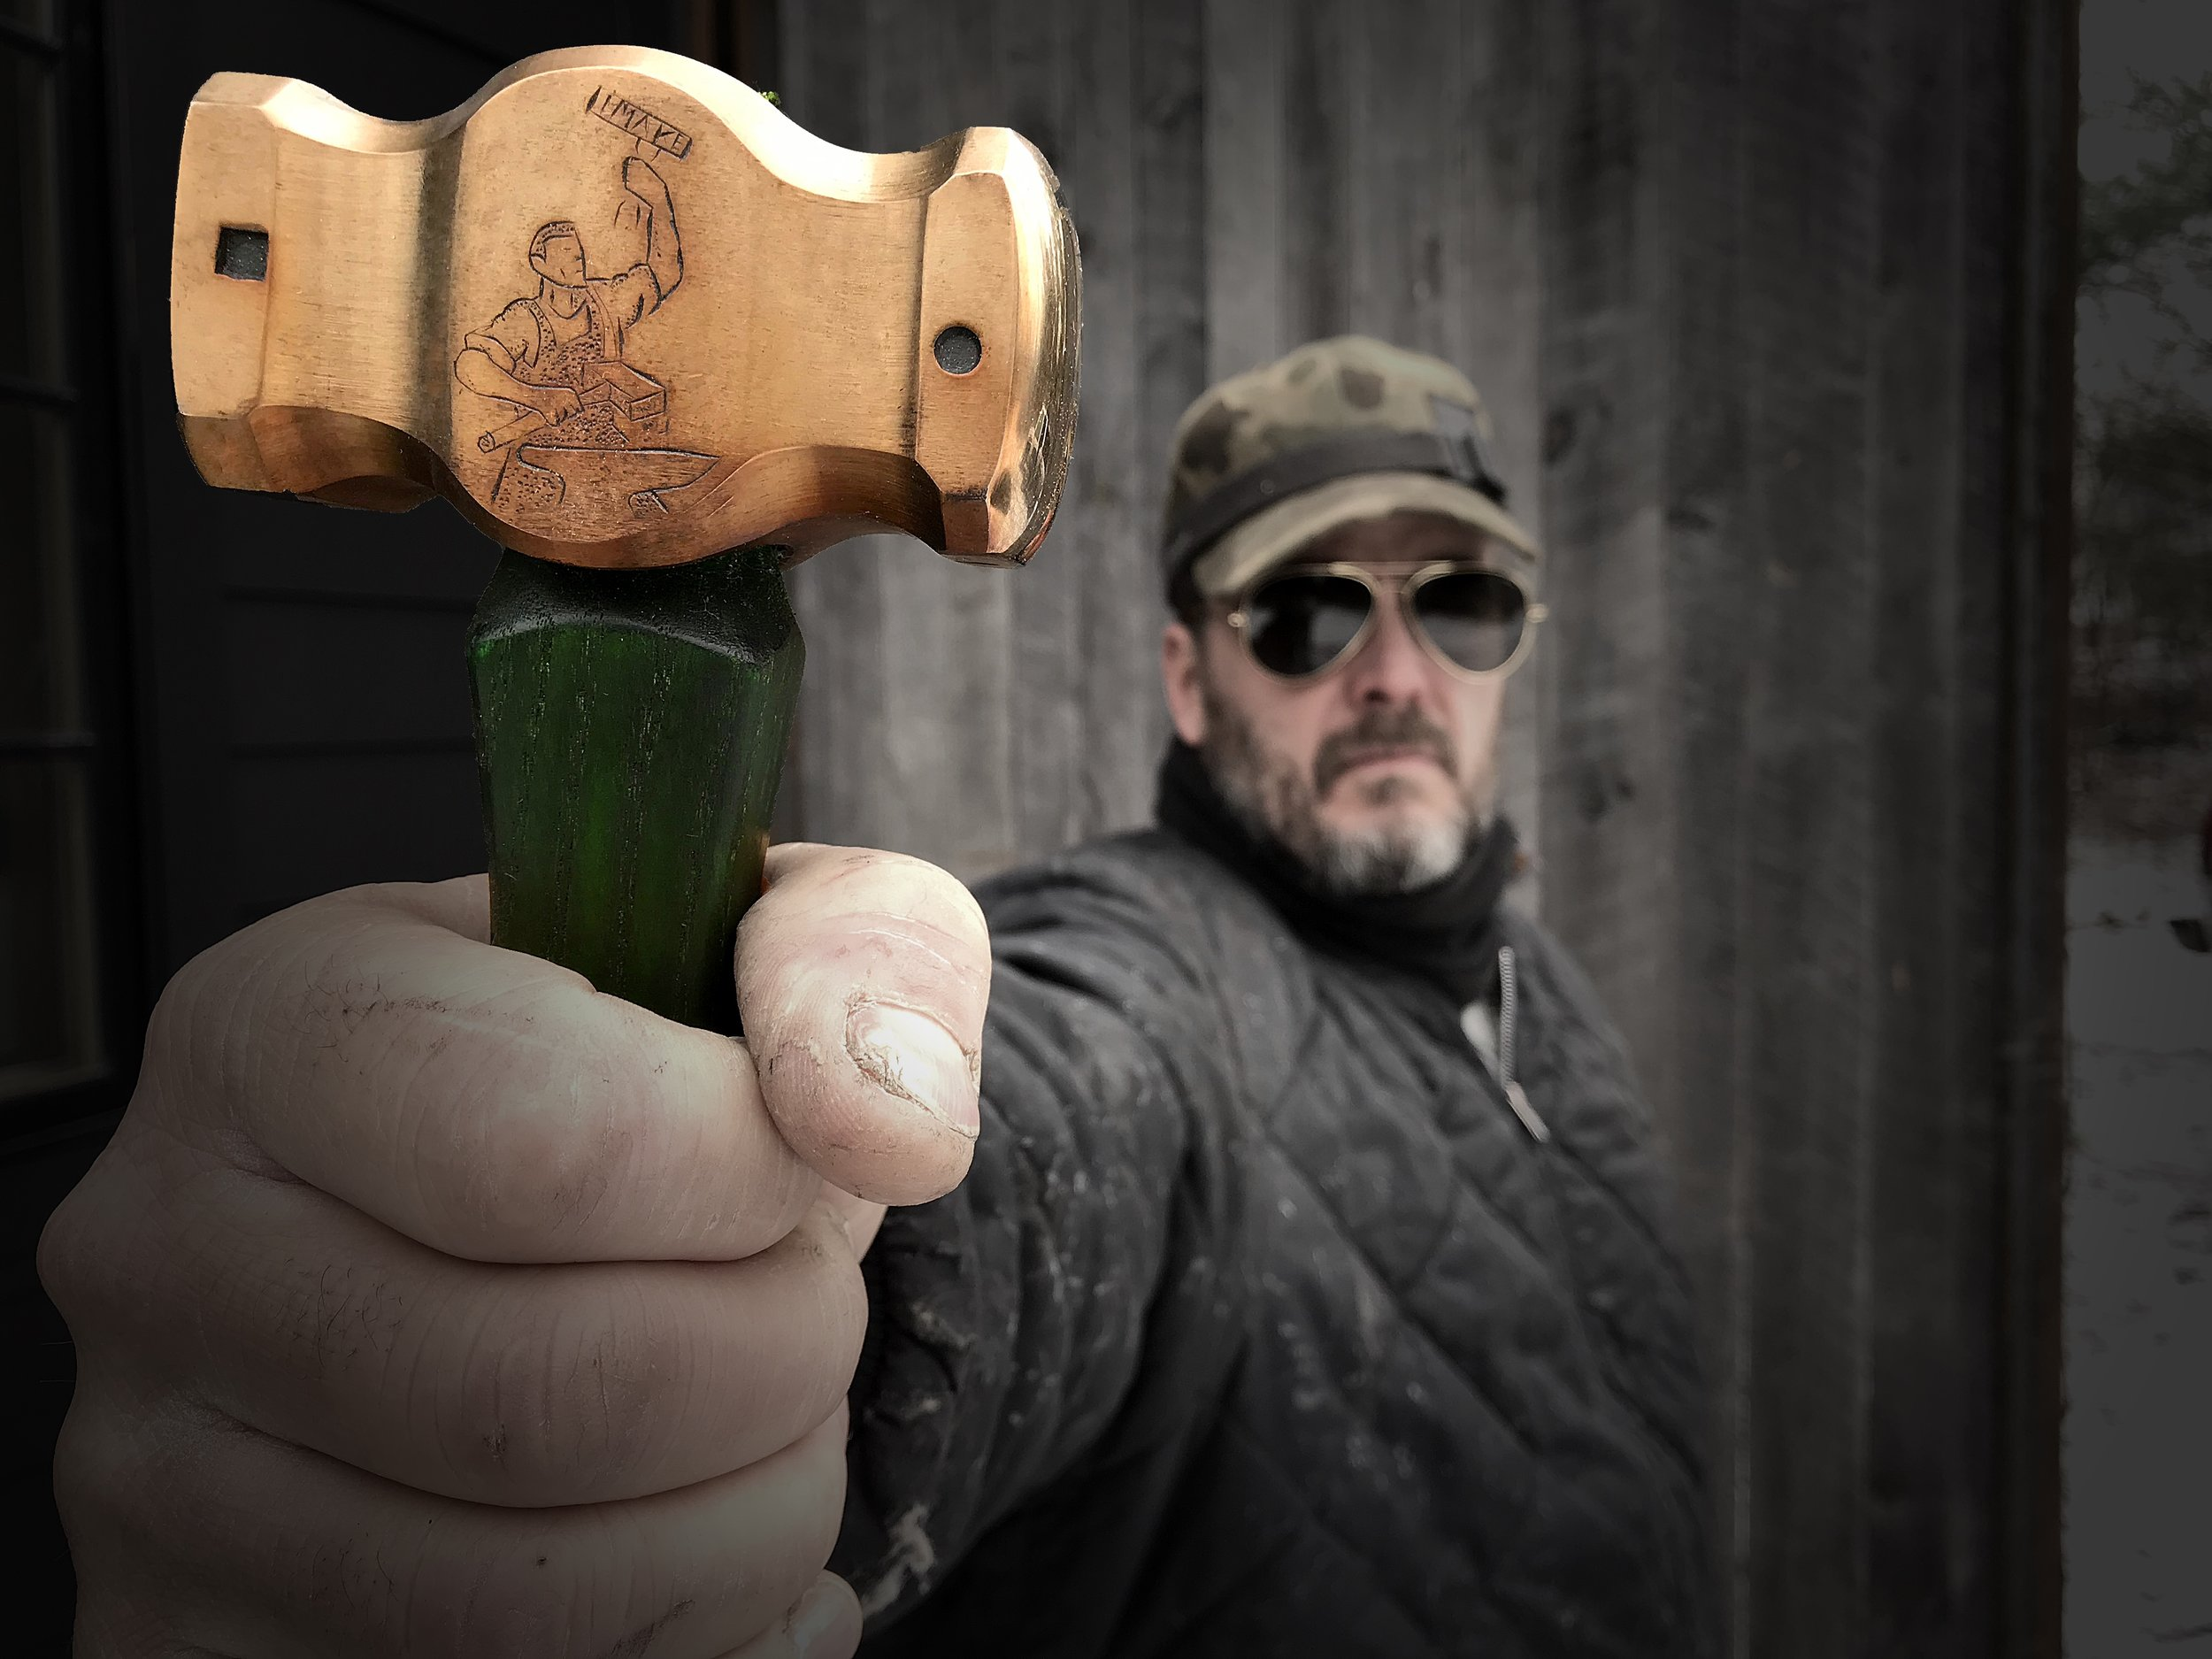 Forged & Engraved hammer for Jimmy Diresta